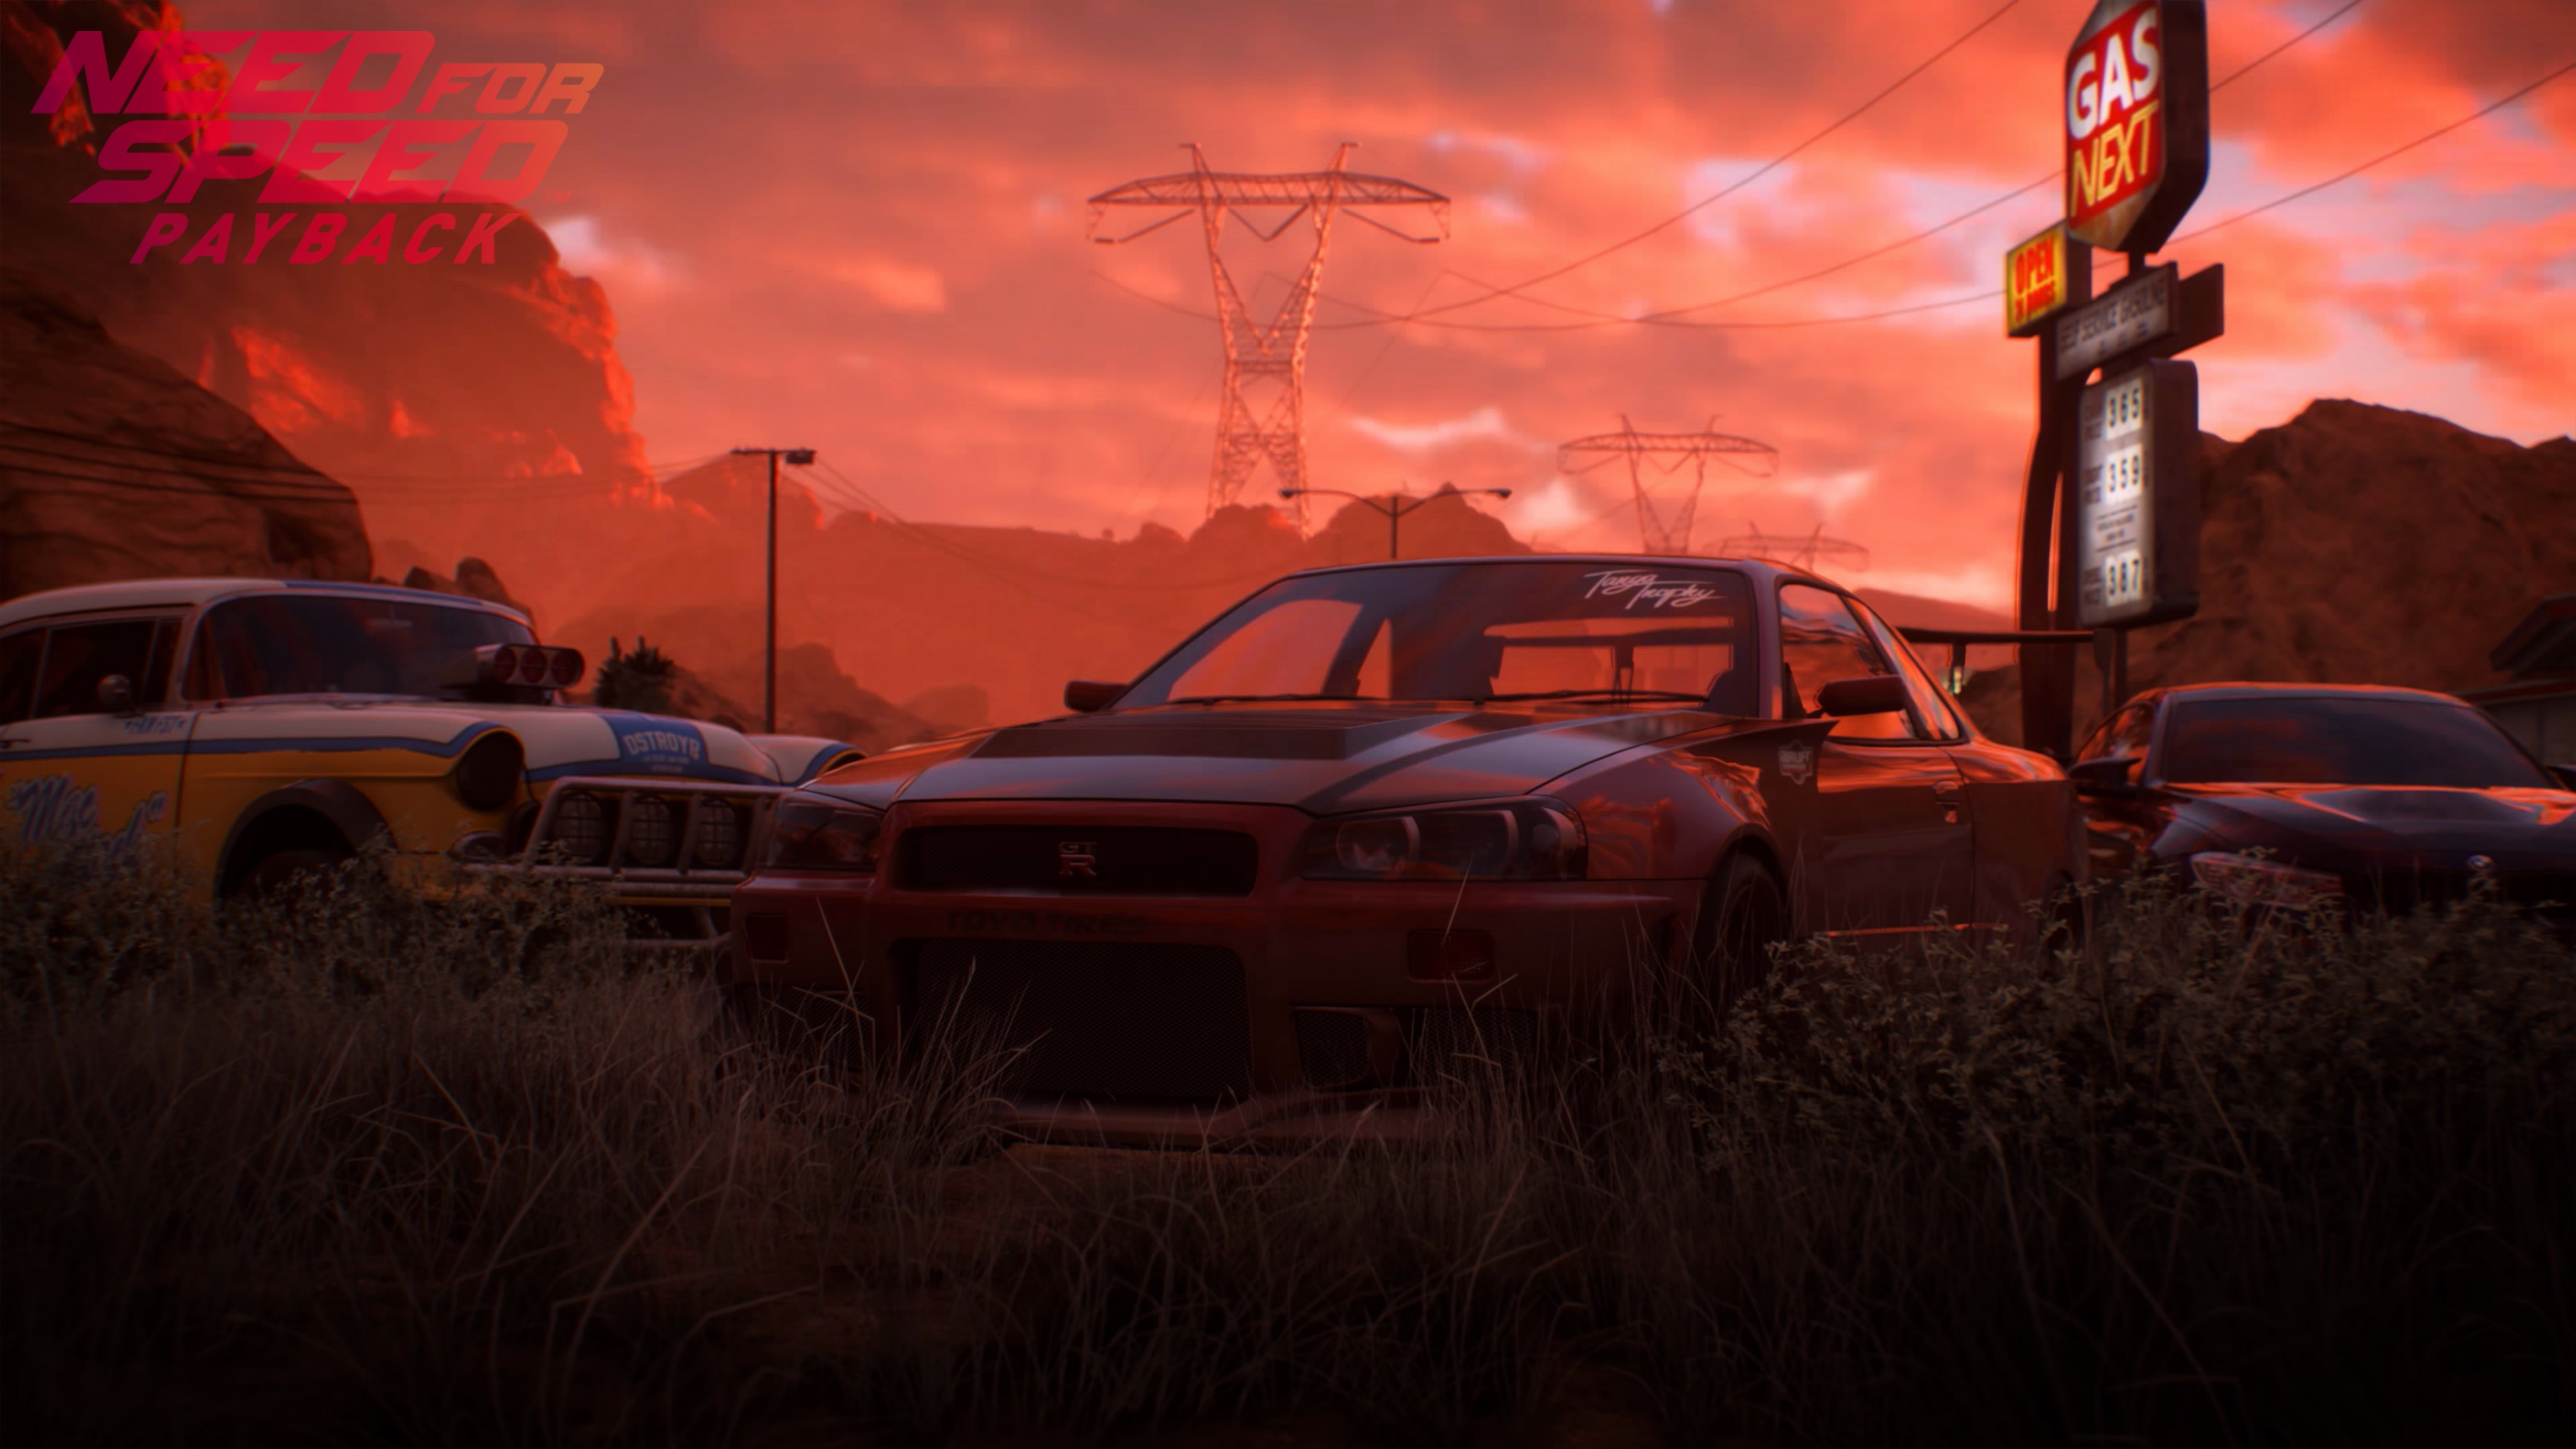 Download Wallpaper From Game Need For Speed Payback With Tags Car